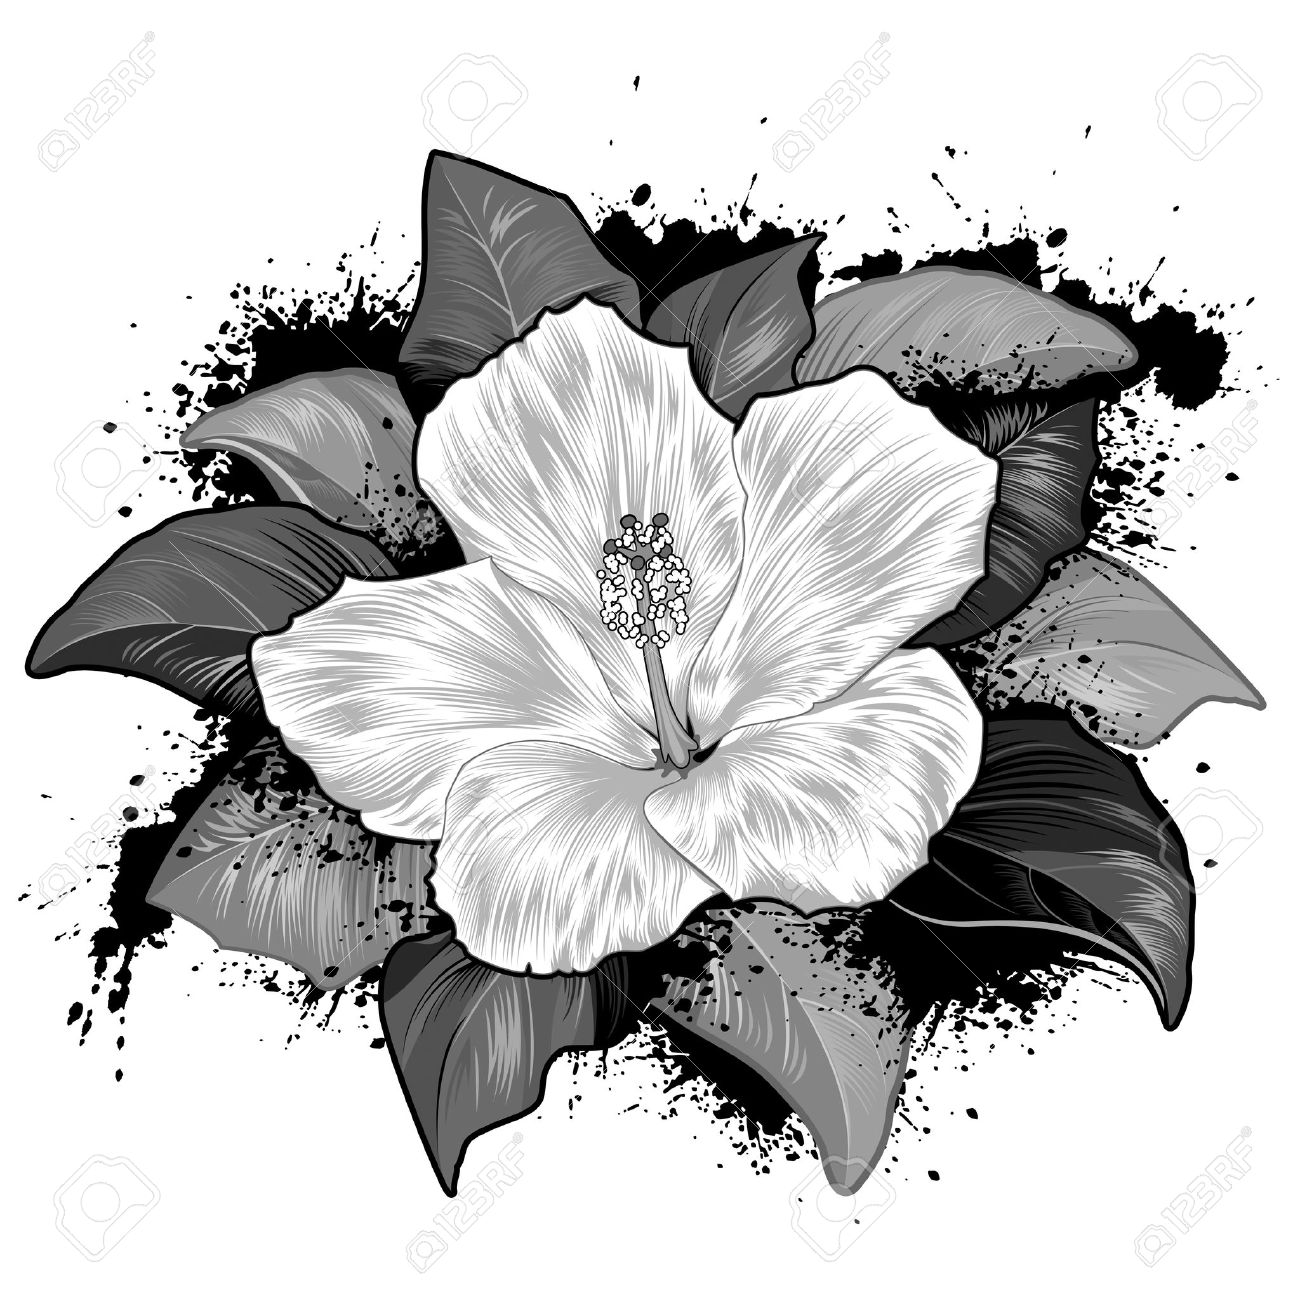 Hollyhocks clipart #1, Download drawings